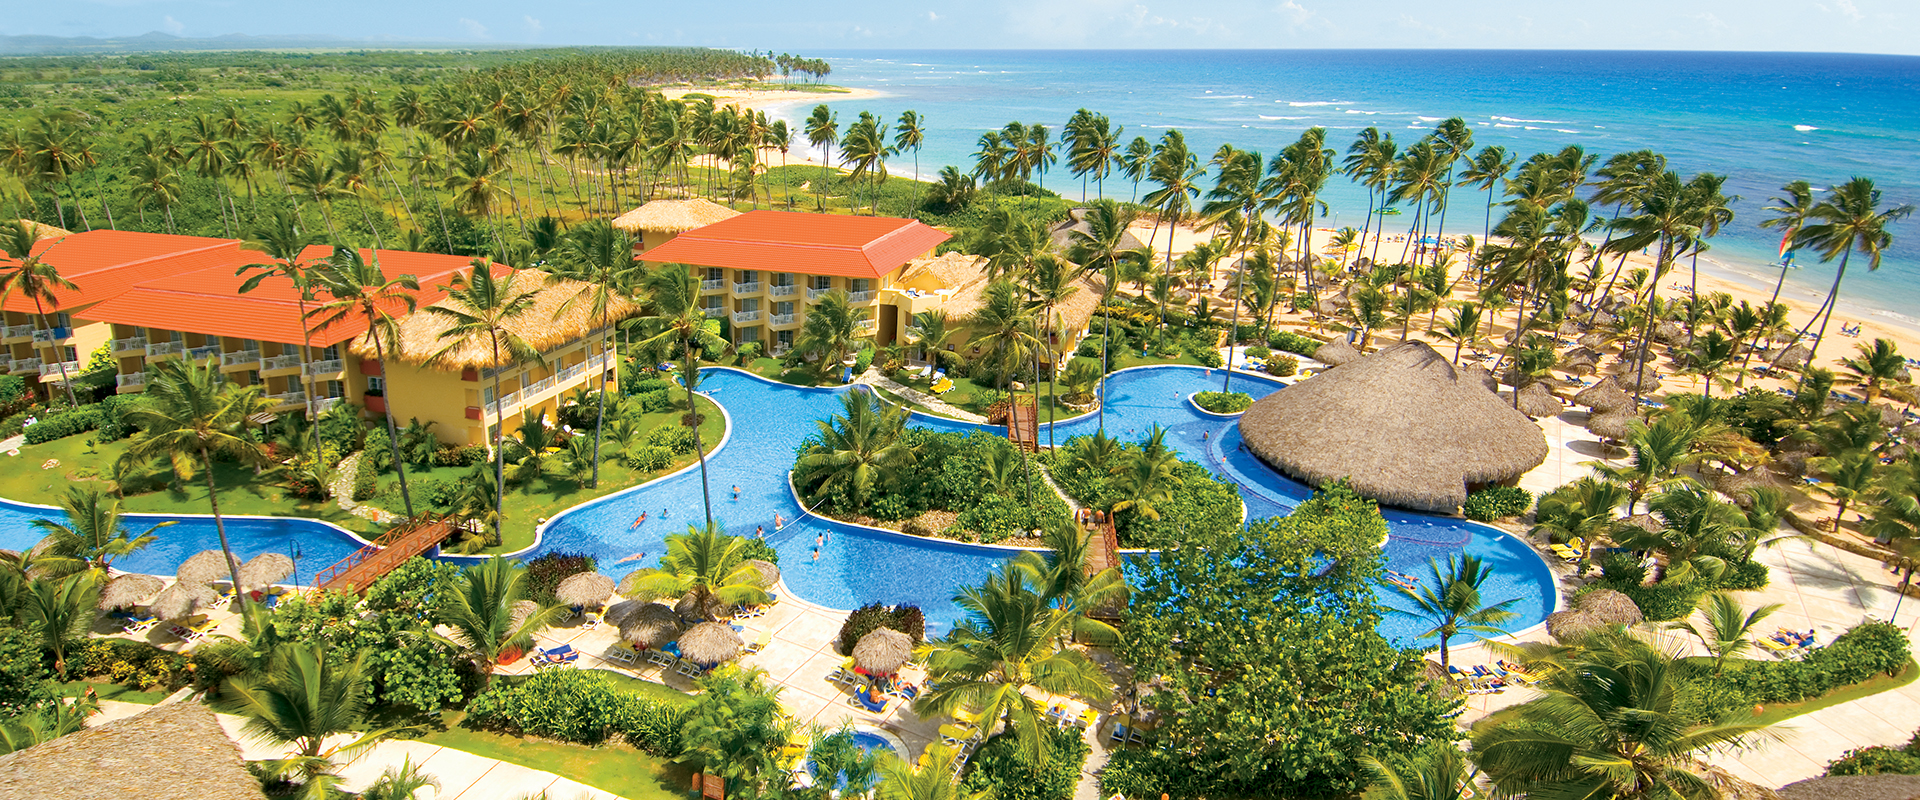 Travel by bob discount all inclusive vacation packages for Vacations to punta cana